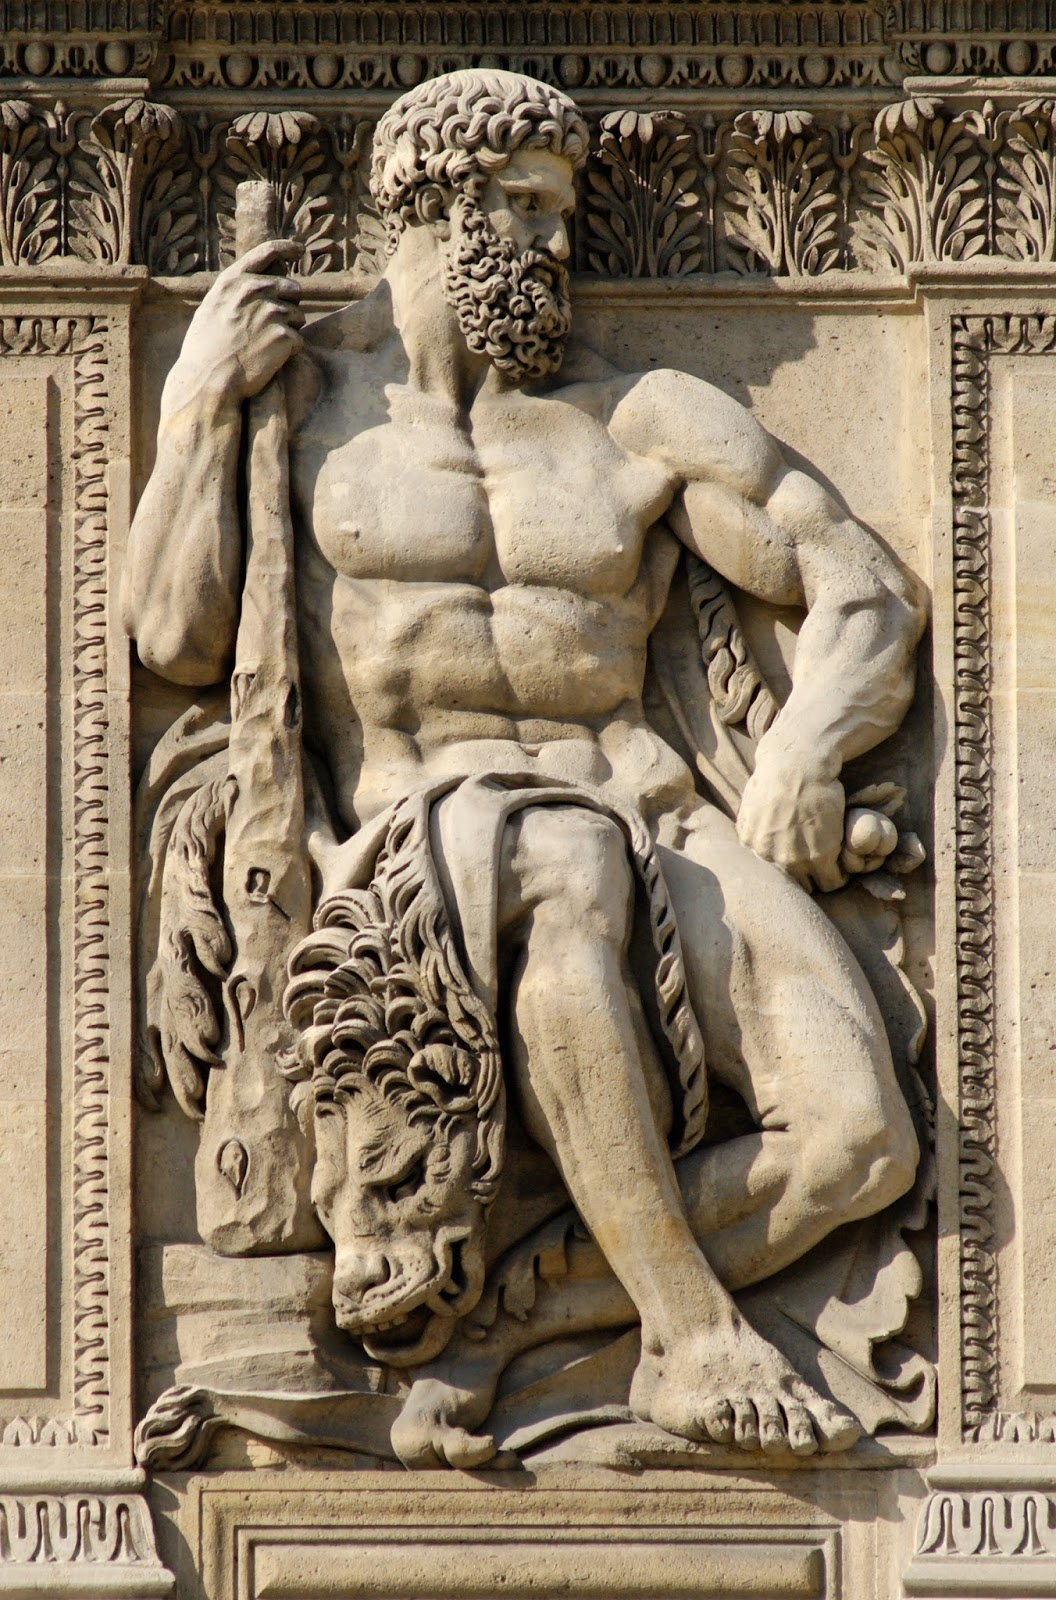 [Image: Relief_Heracles_cour_Carree_Louvre.jpg]